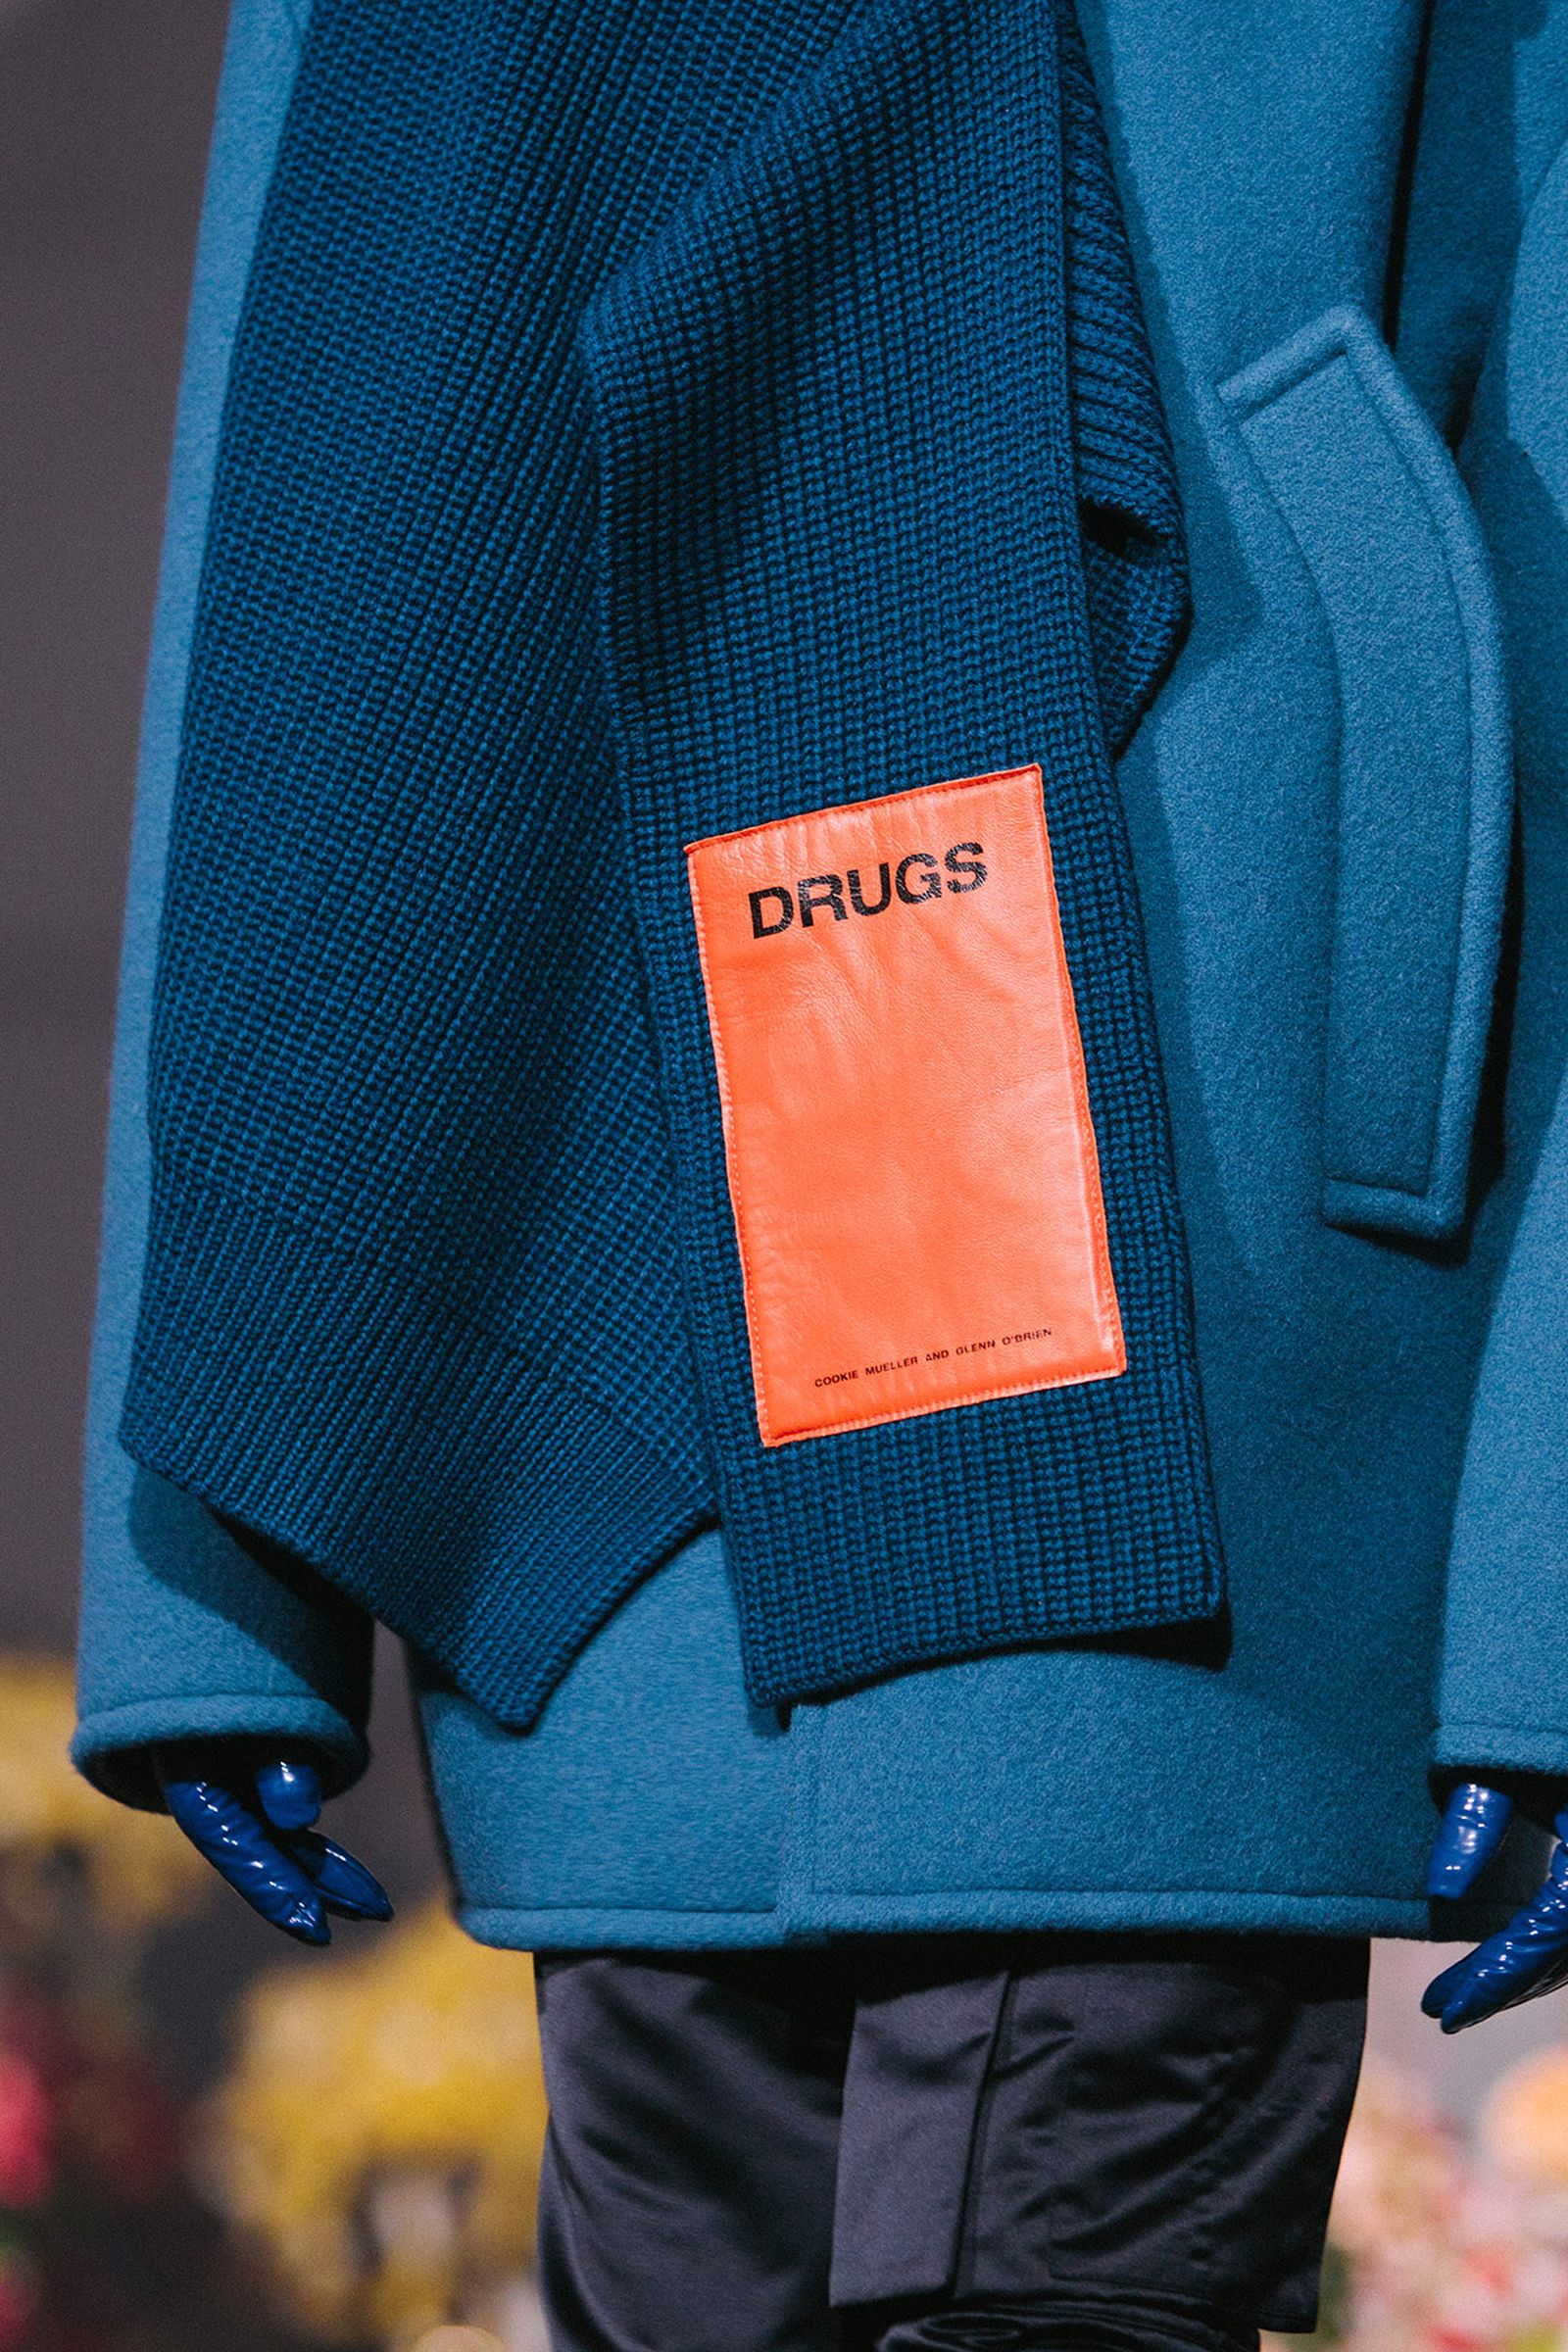 Raf Simons Uses Fashion To Comment On Designer Drugs